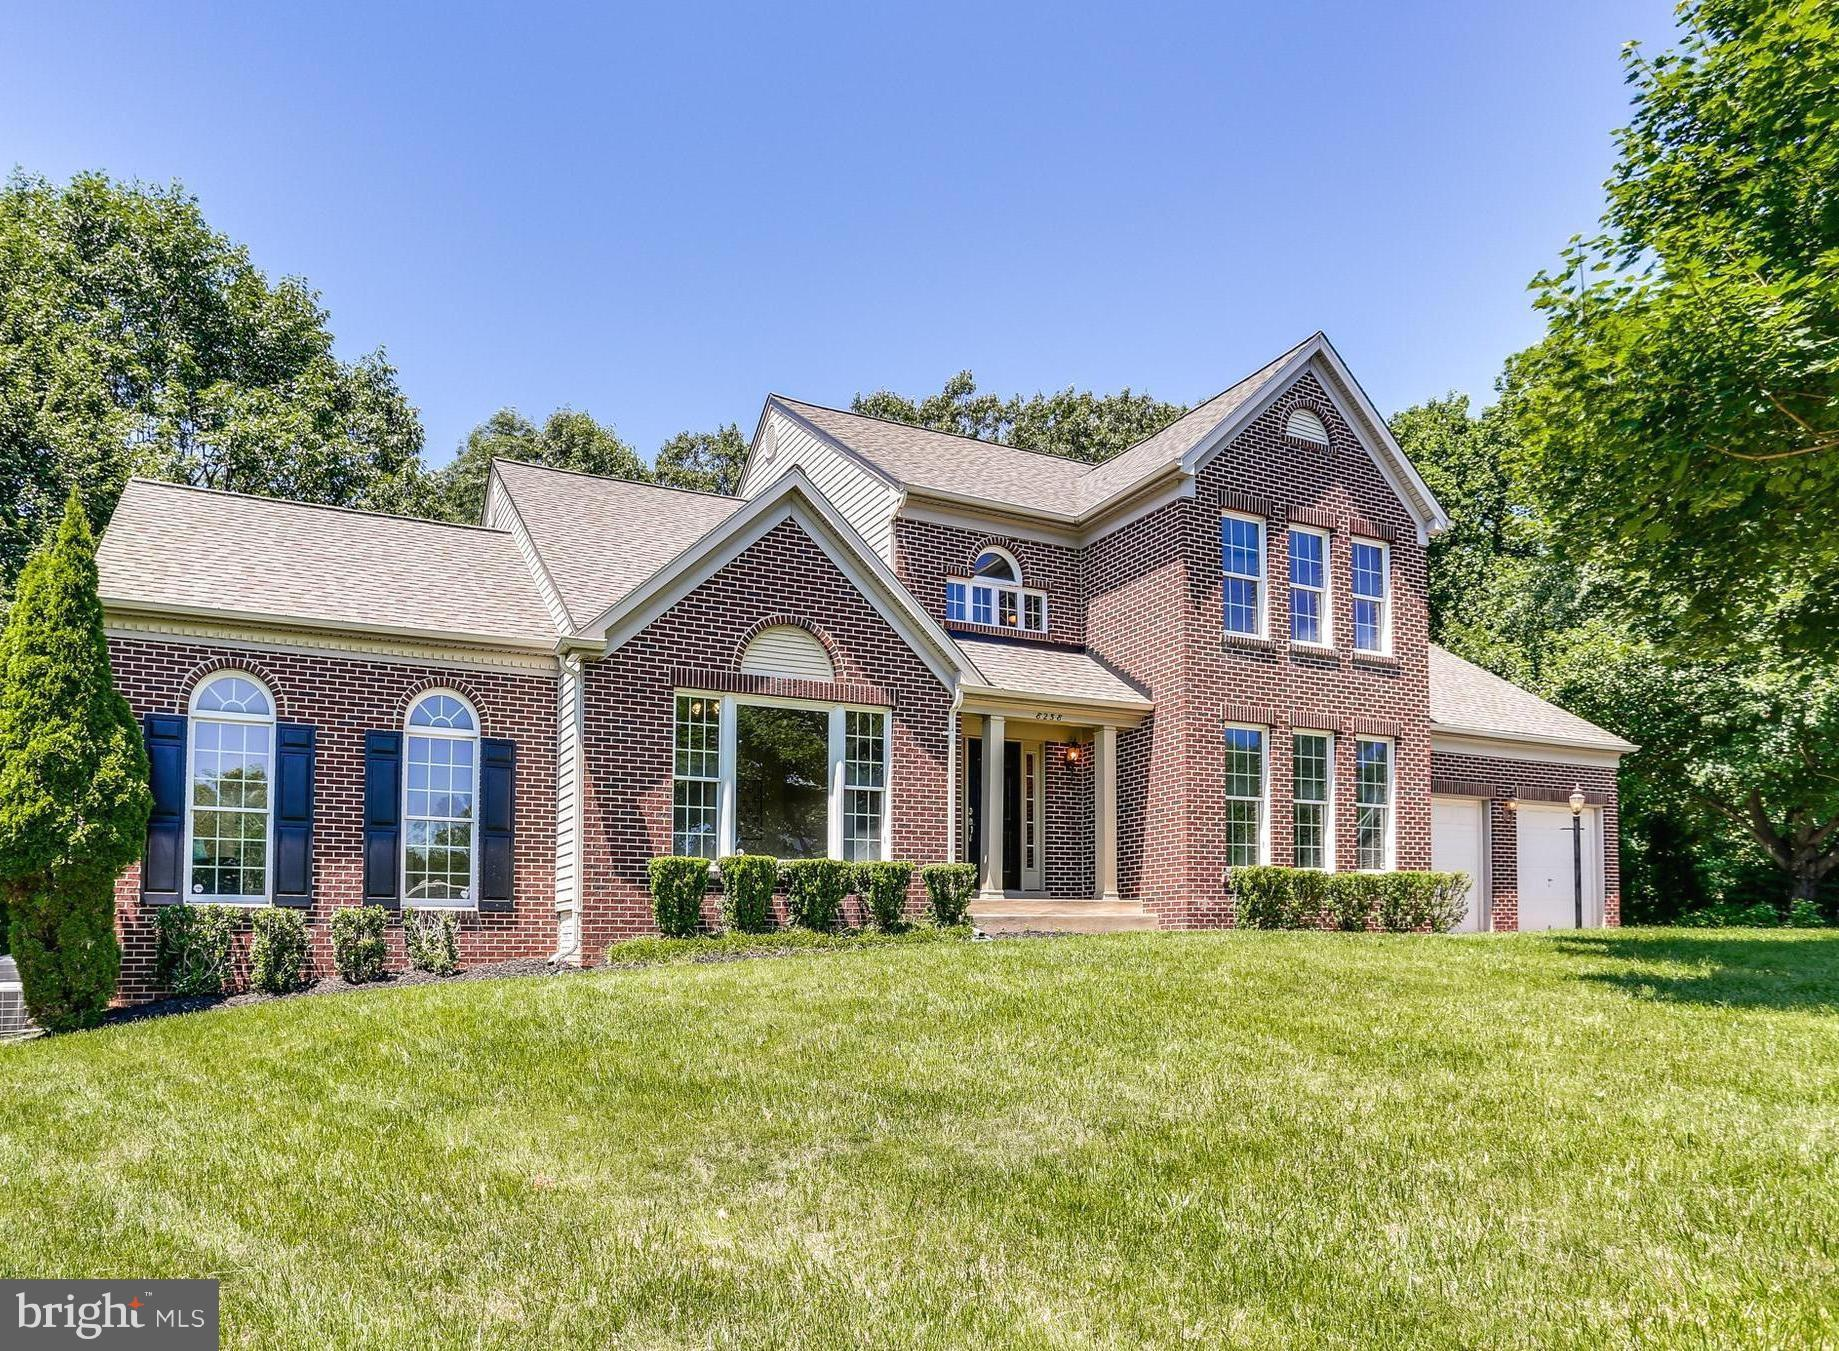 8258 SPRING BRANCH COURT, LAUREL, MD 20723